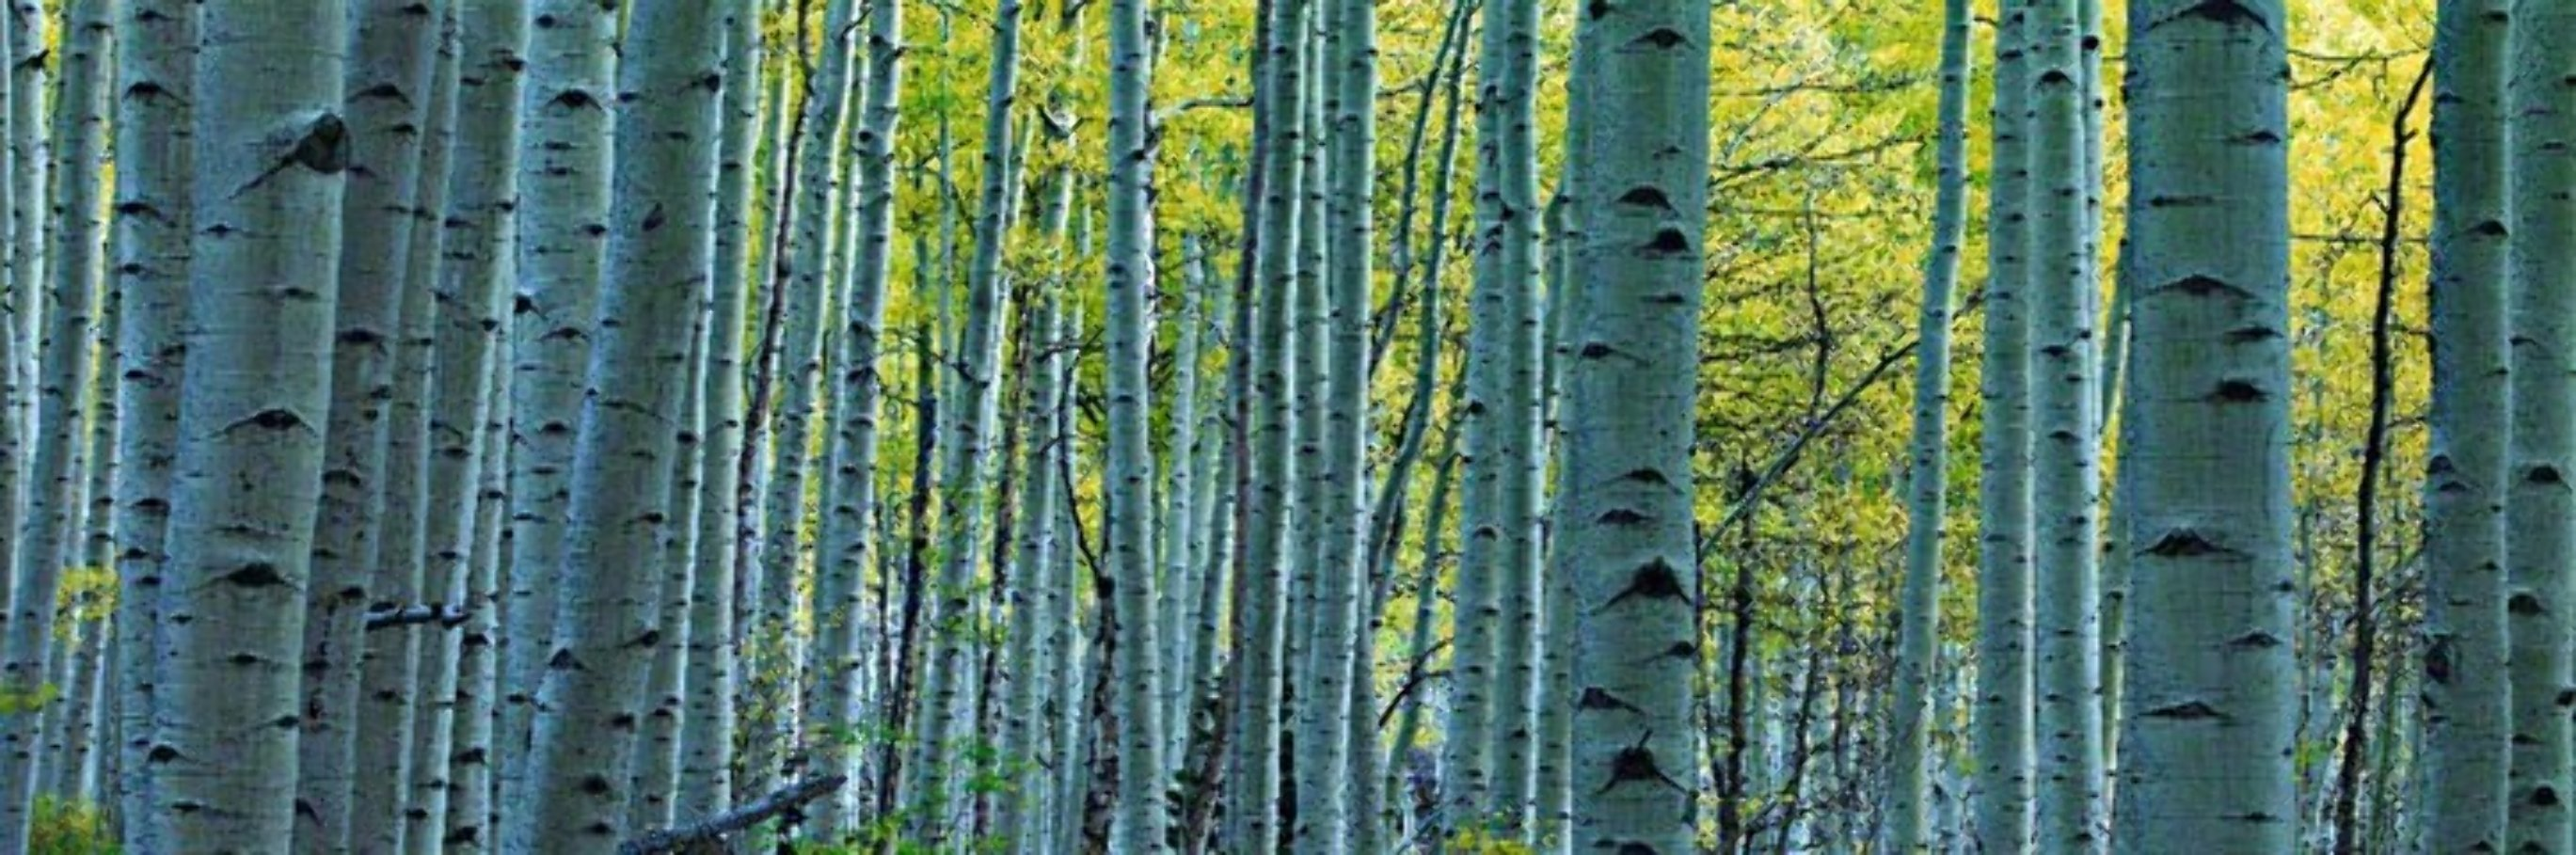 Endless Birches Colorado AP 2M Super Huge Panorama by Peter Lik